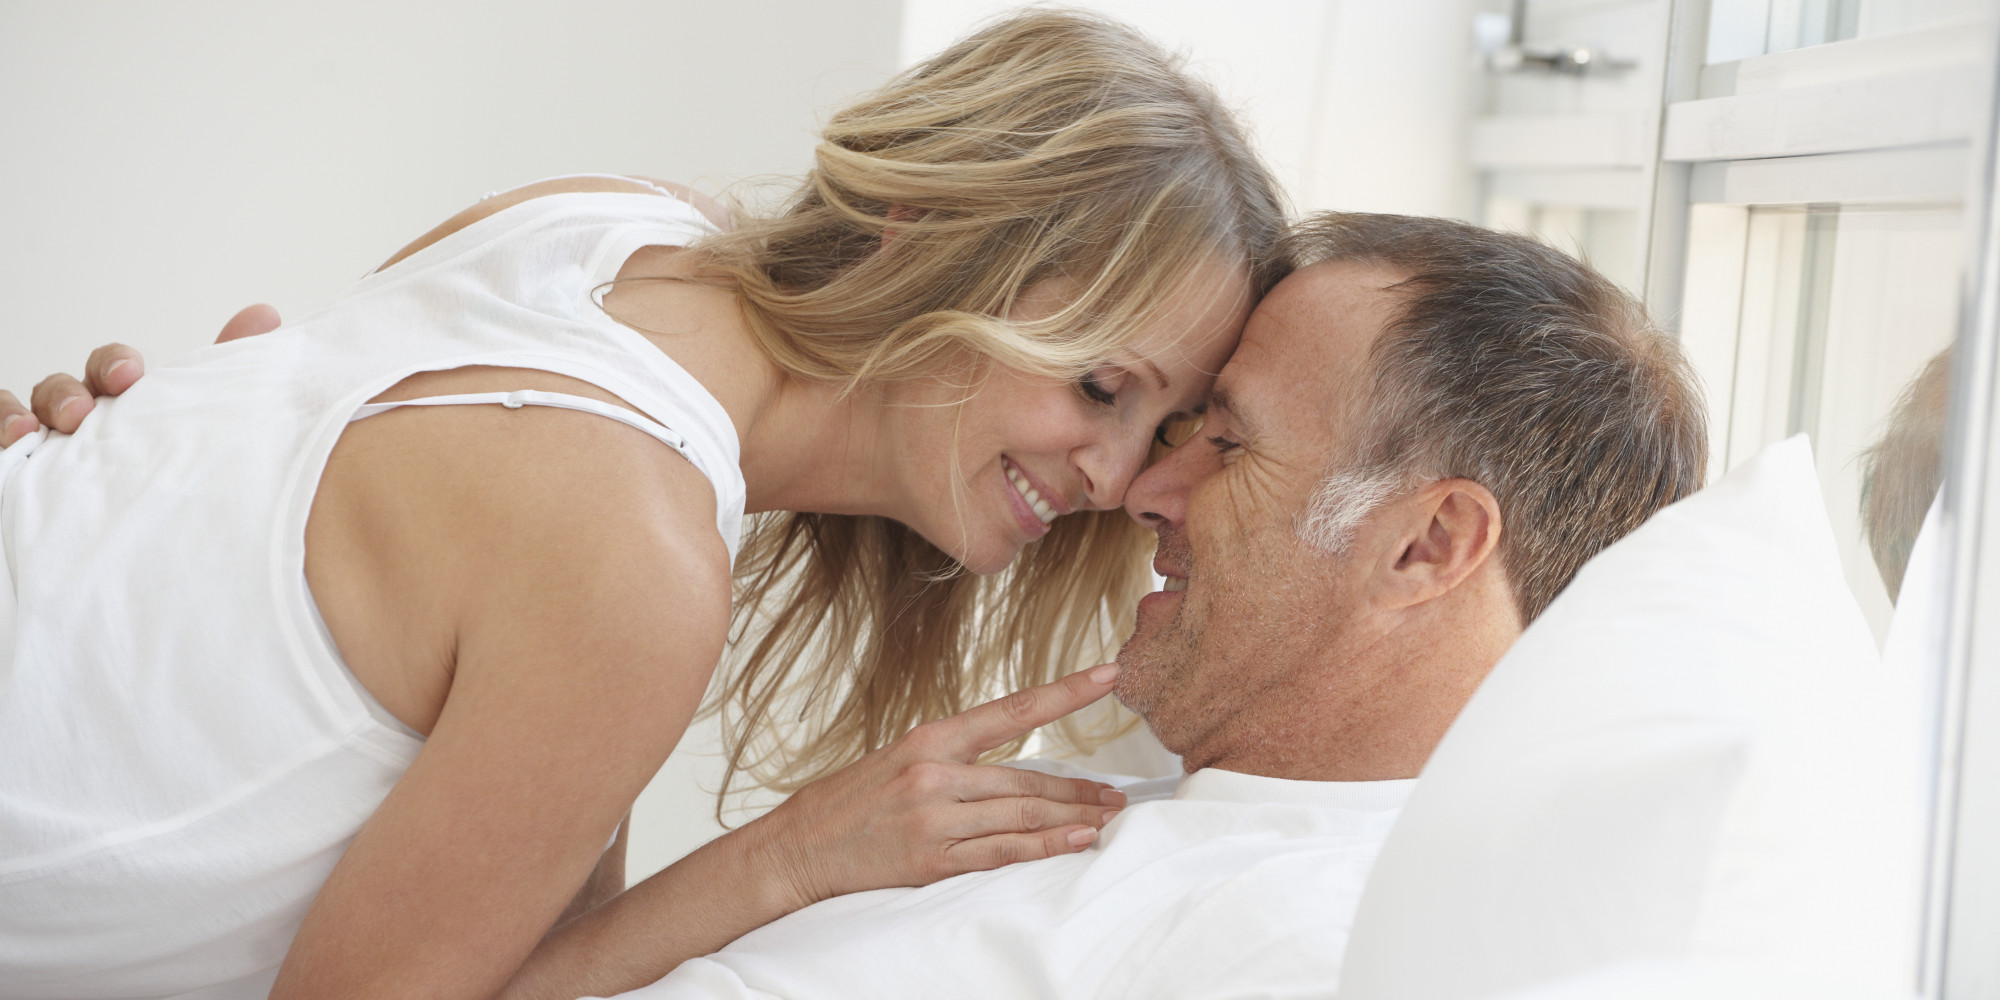 https://i1.wp.com/i.huffpost.com/gen/1717502/images/o-MATURE-COUPLE-IN-BED-facebook.jpg